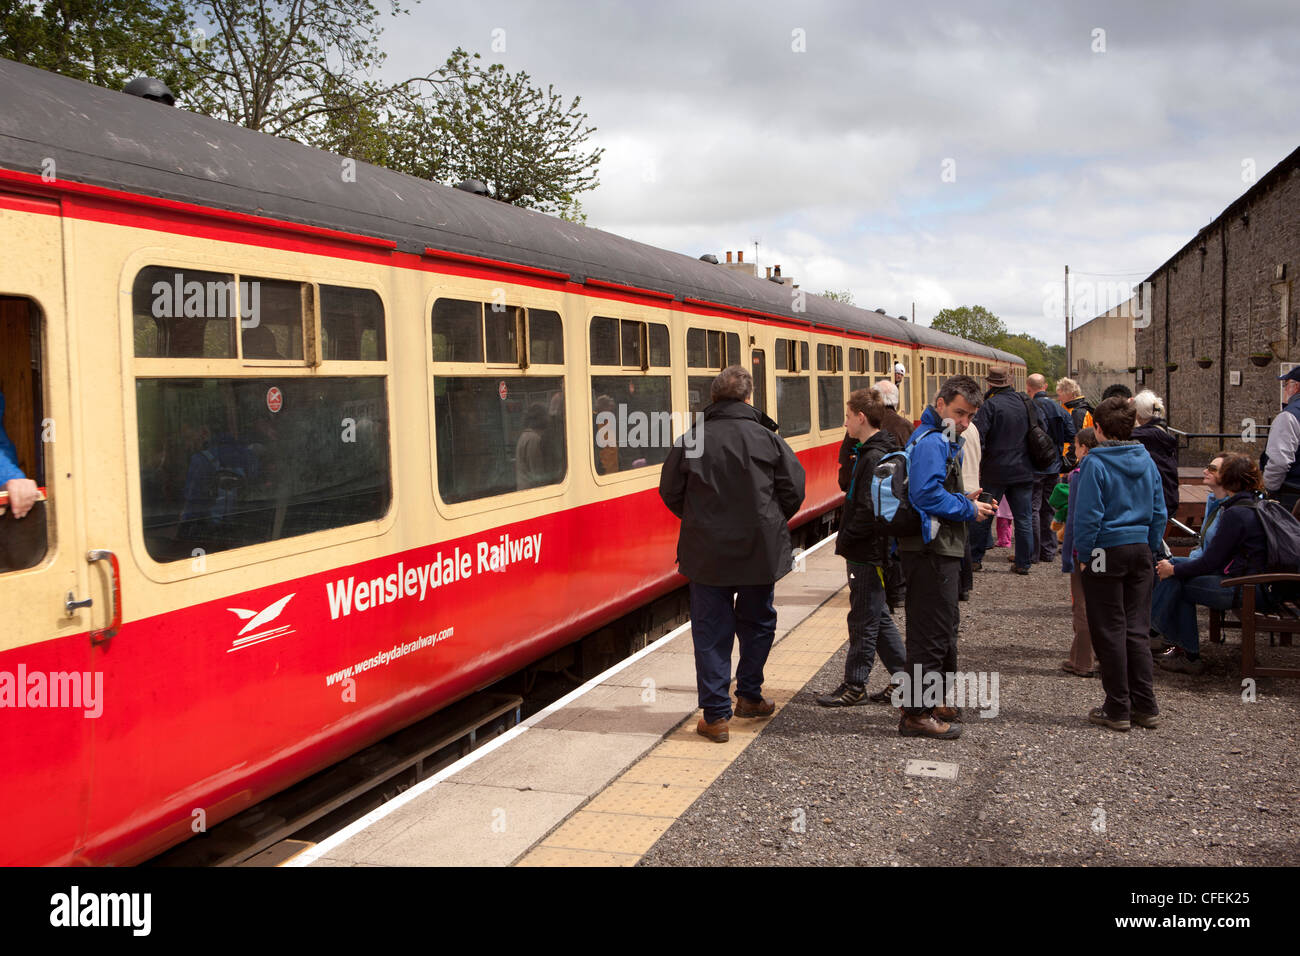 UK, England, Yorkshire, Leyburn station, passengers boarding Wensleydale Railway train at platform - Stock Image